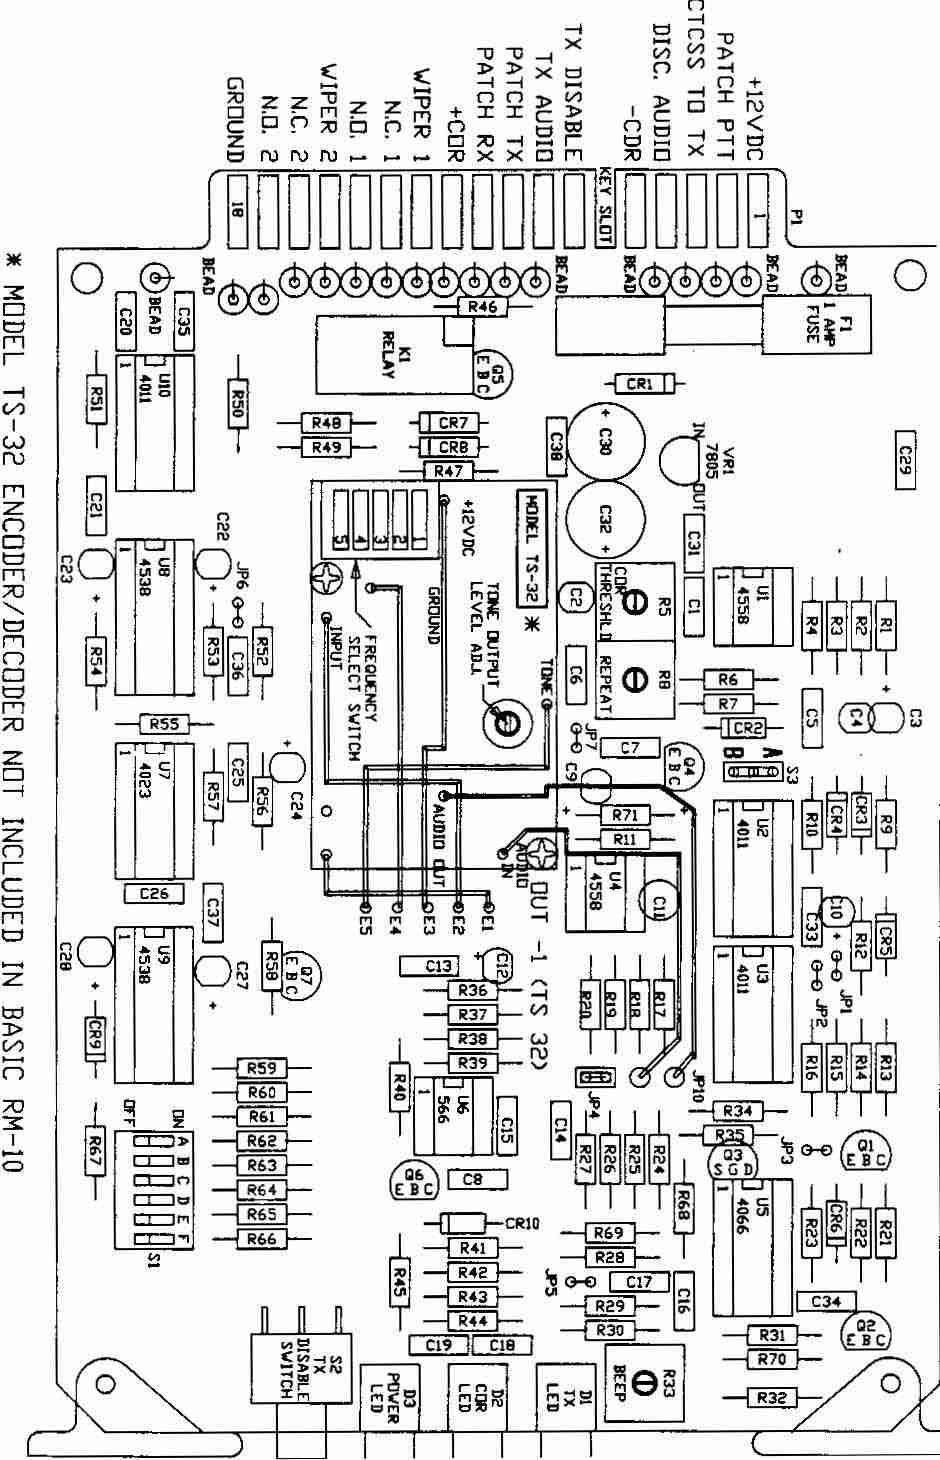 Lf 5095 Whelen Strobe Wiring Diagram Whelen Control Wiring Diagram Free Download Diagram